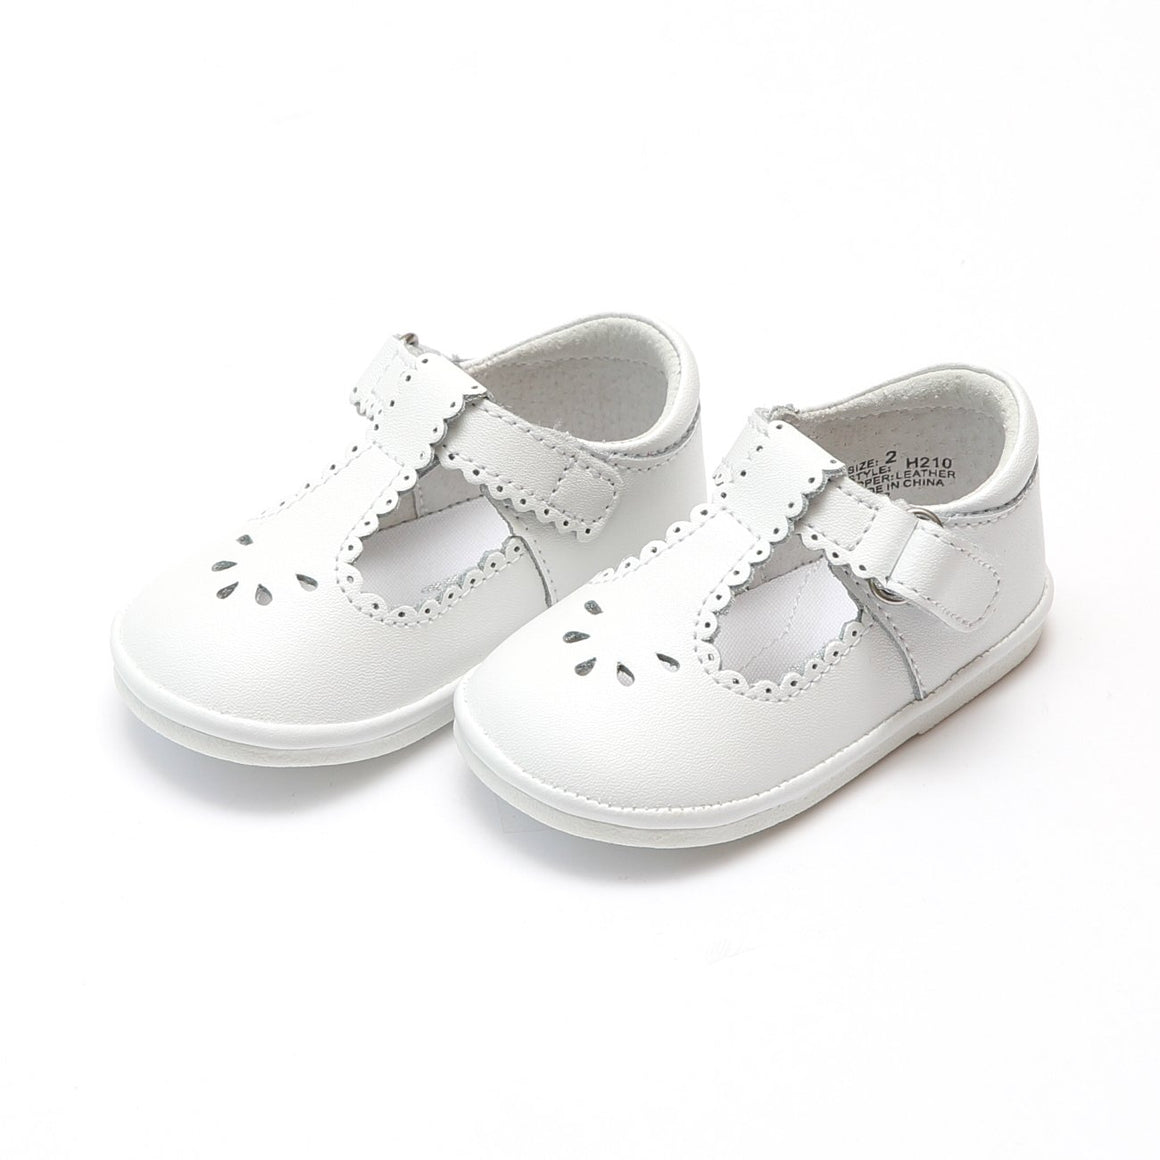 girls white leather scalloped mary jane shoe, the Dottie from L'Amour available at Threadfare Children's Boutique